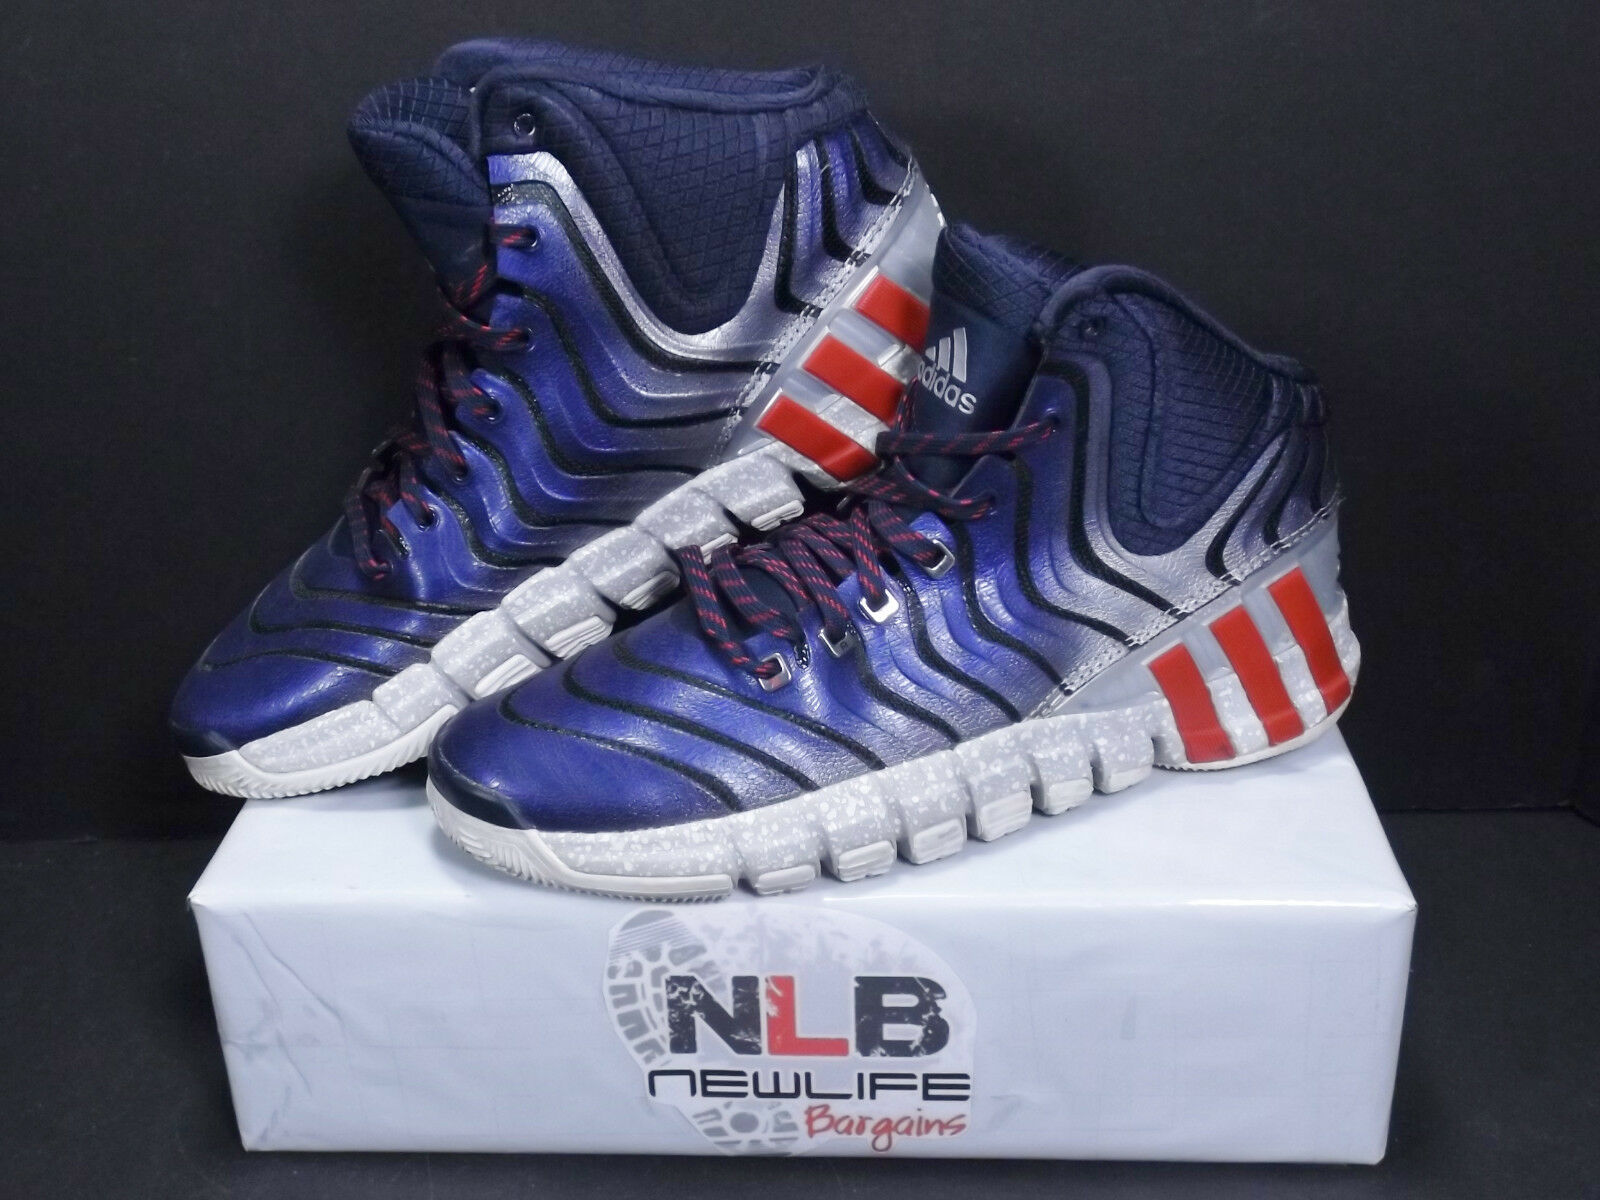 Adidas Adipure Crazyquick 2 Price reduction Navy/Red/White Men's Comfortable Cheap women's shoes women's shoes